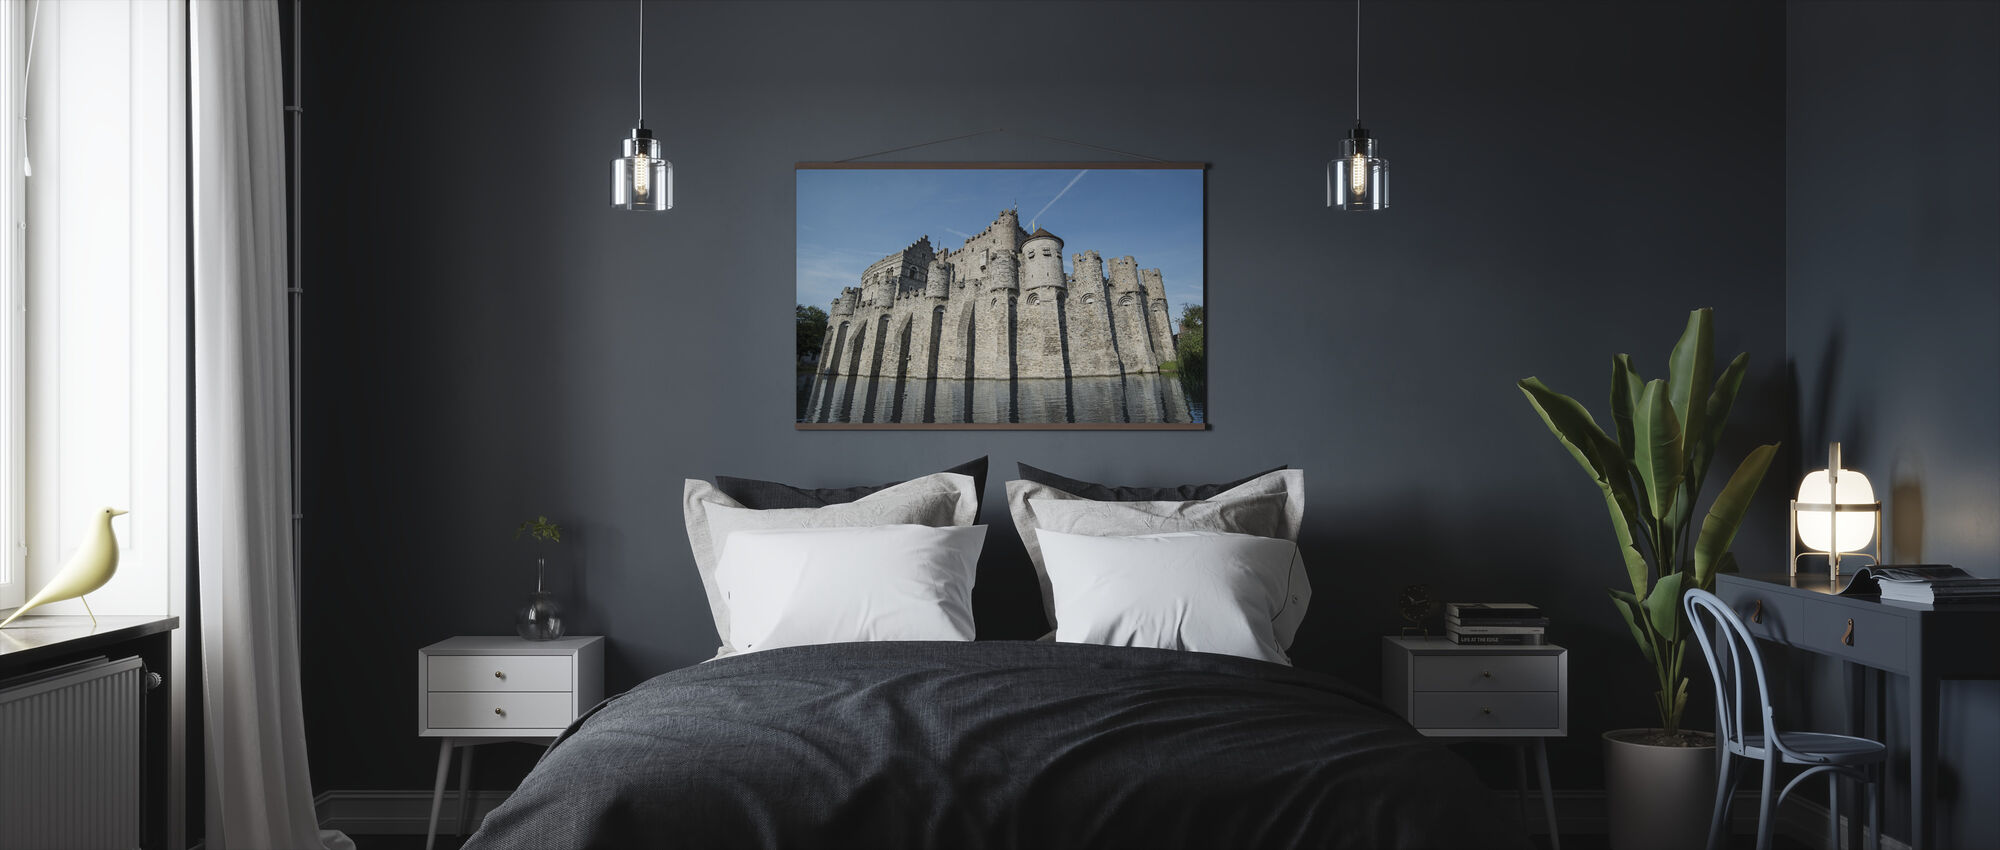 Castle Fortress - Poster - Bedroom